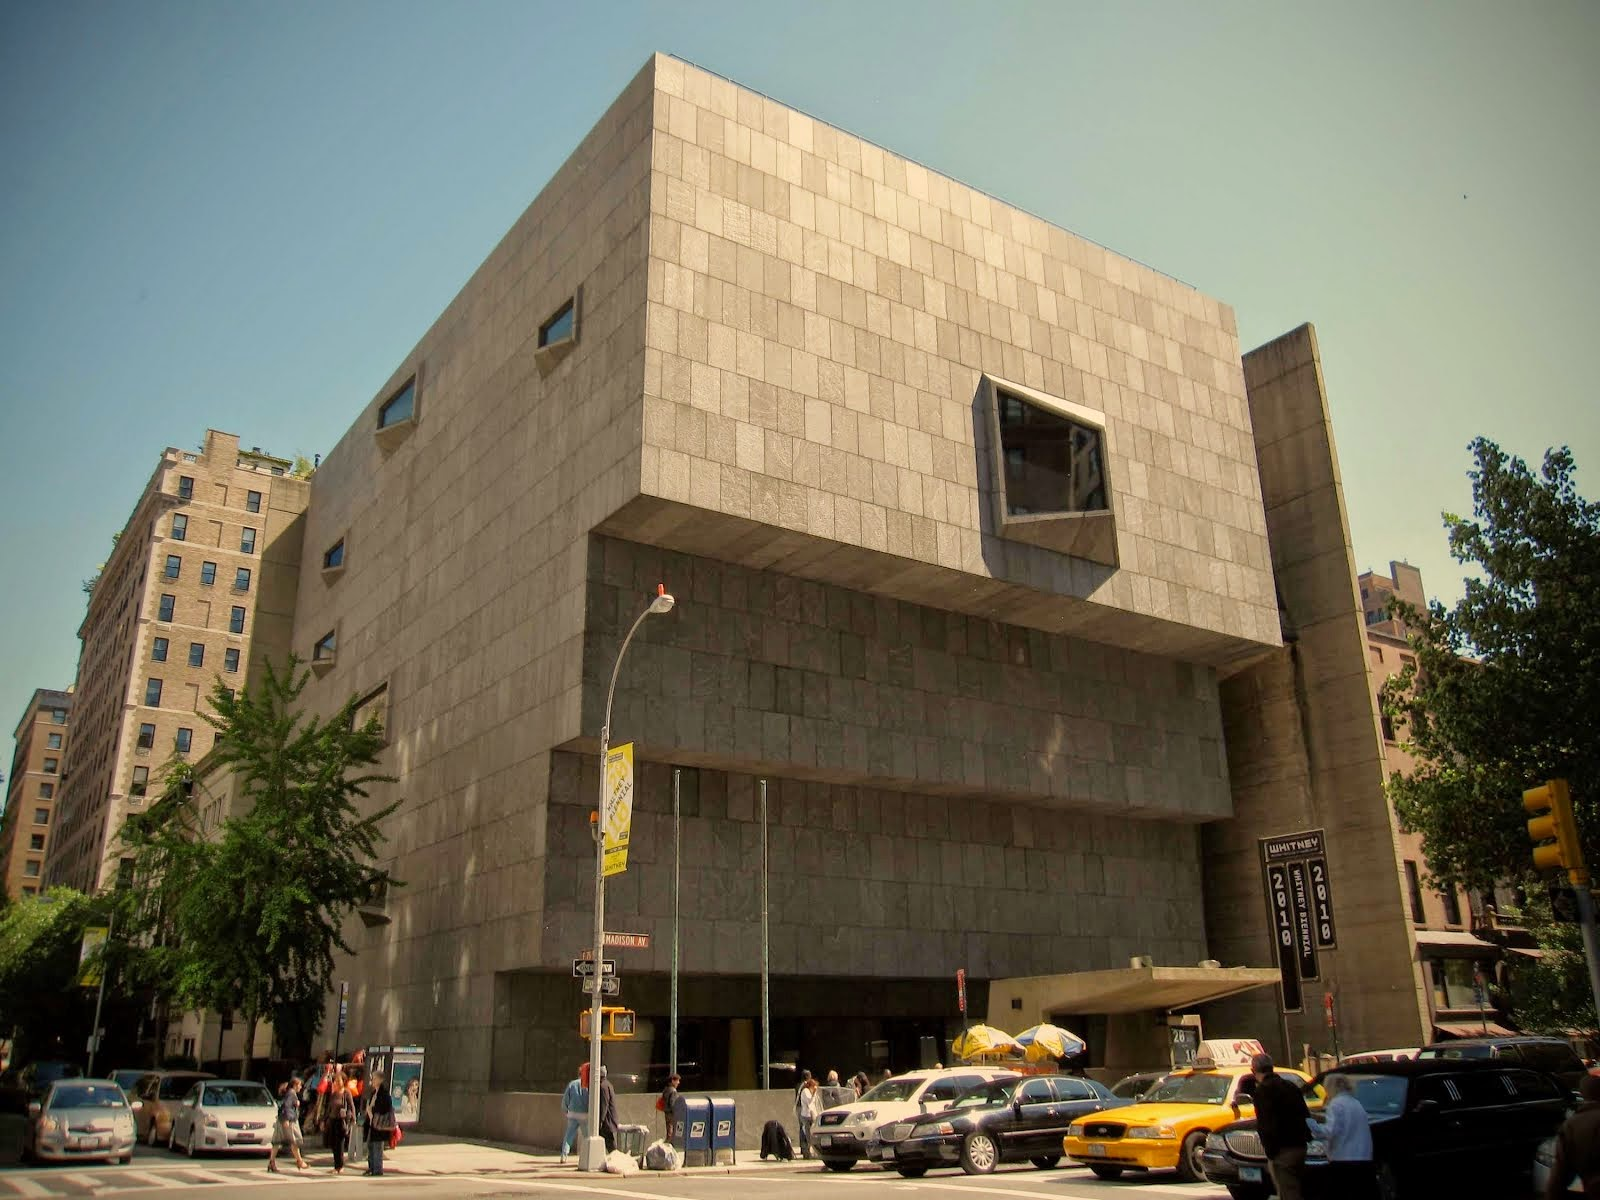 WHITNEY MUSEUM ON GREAT SPACES